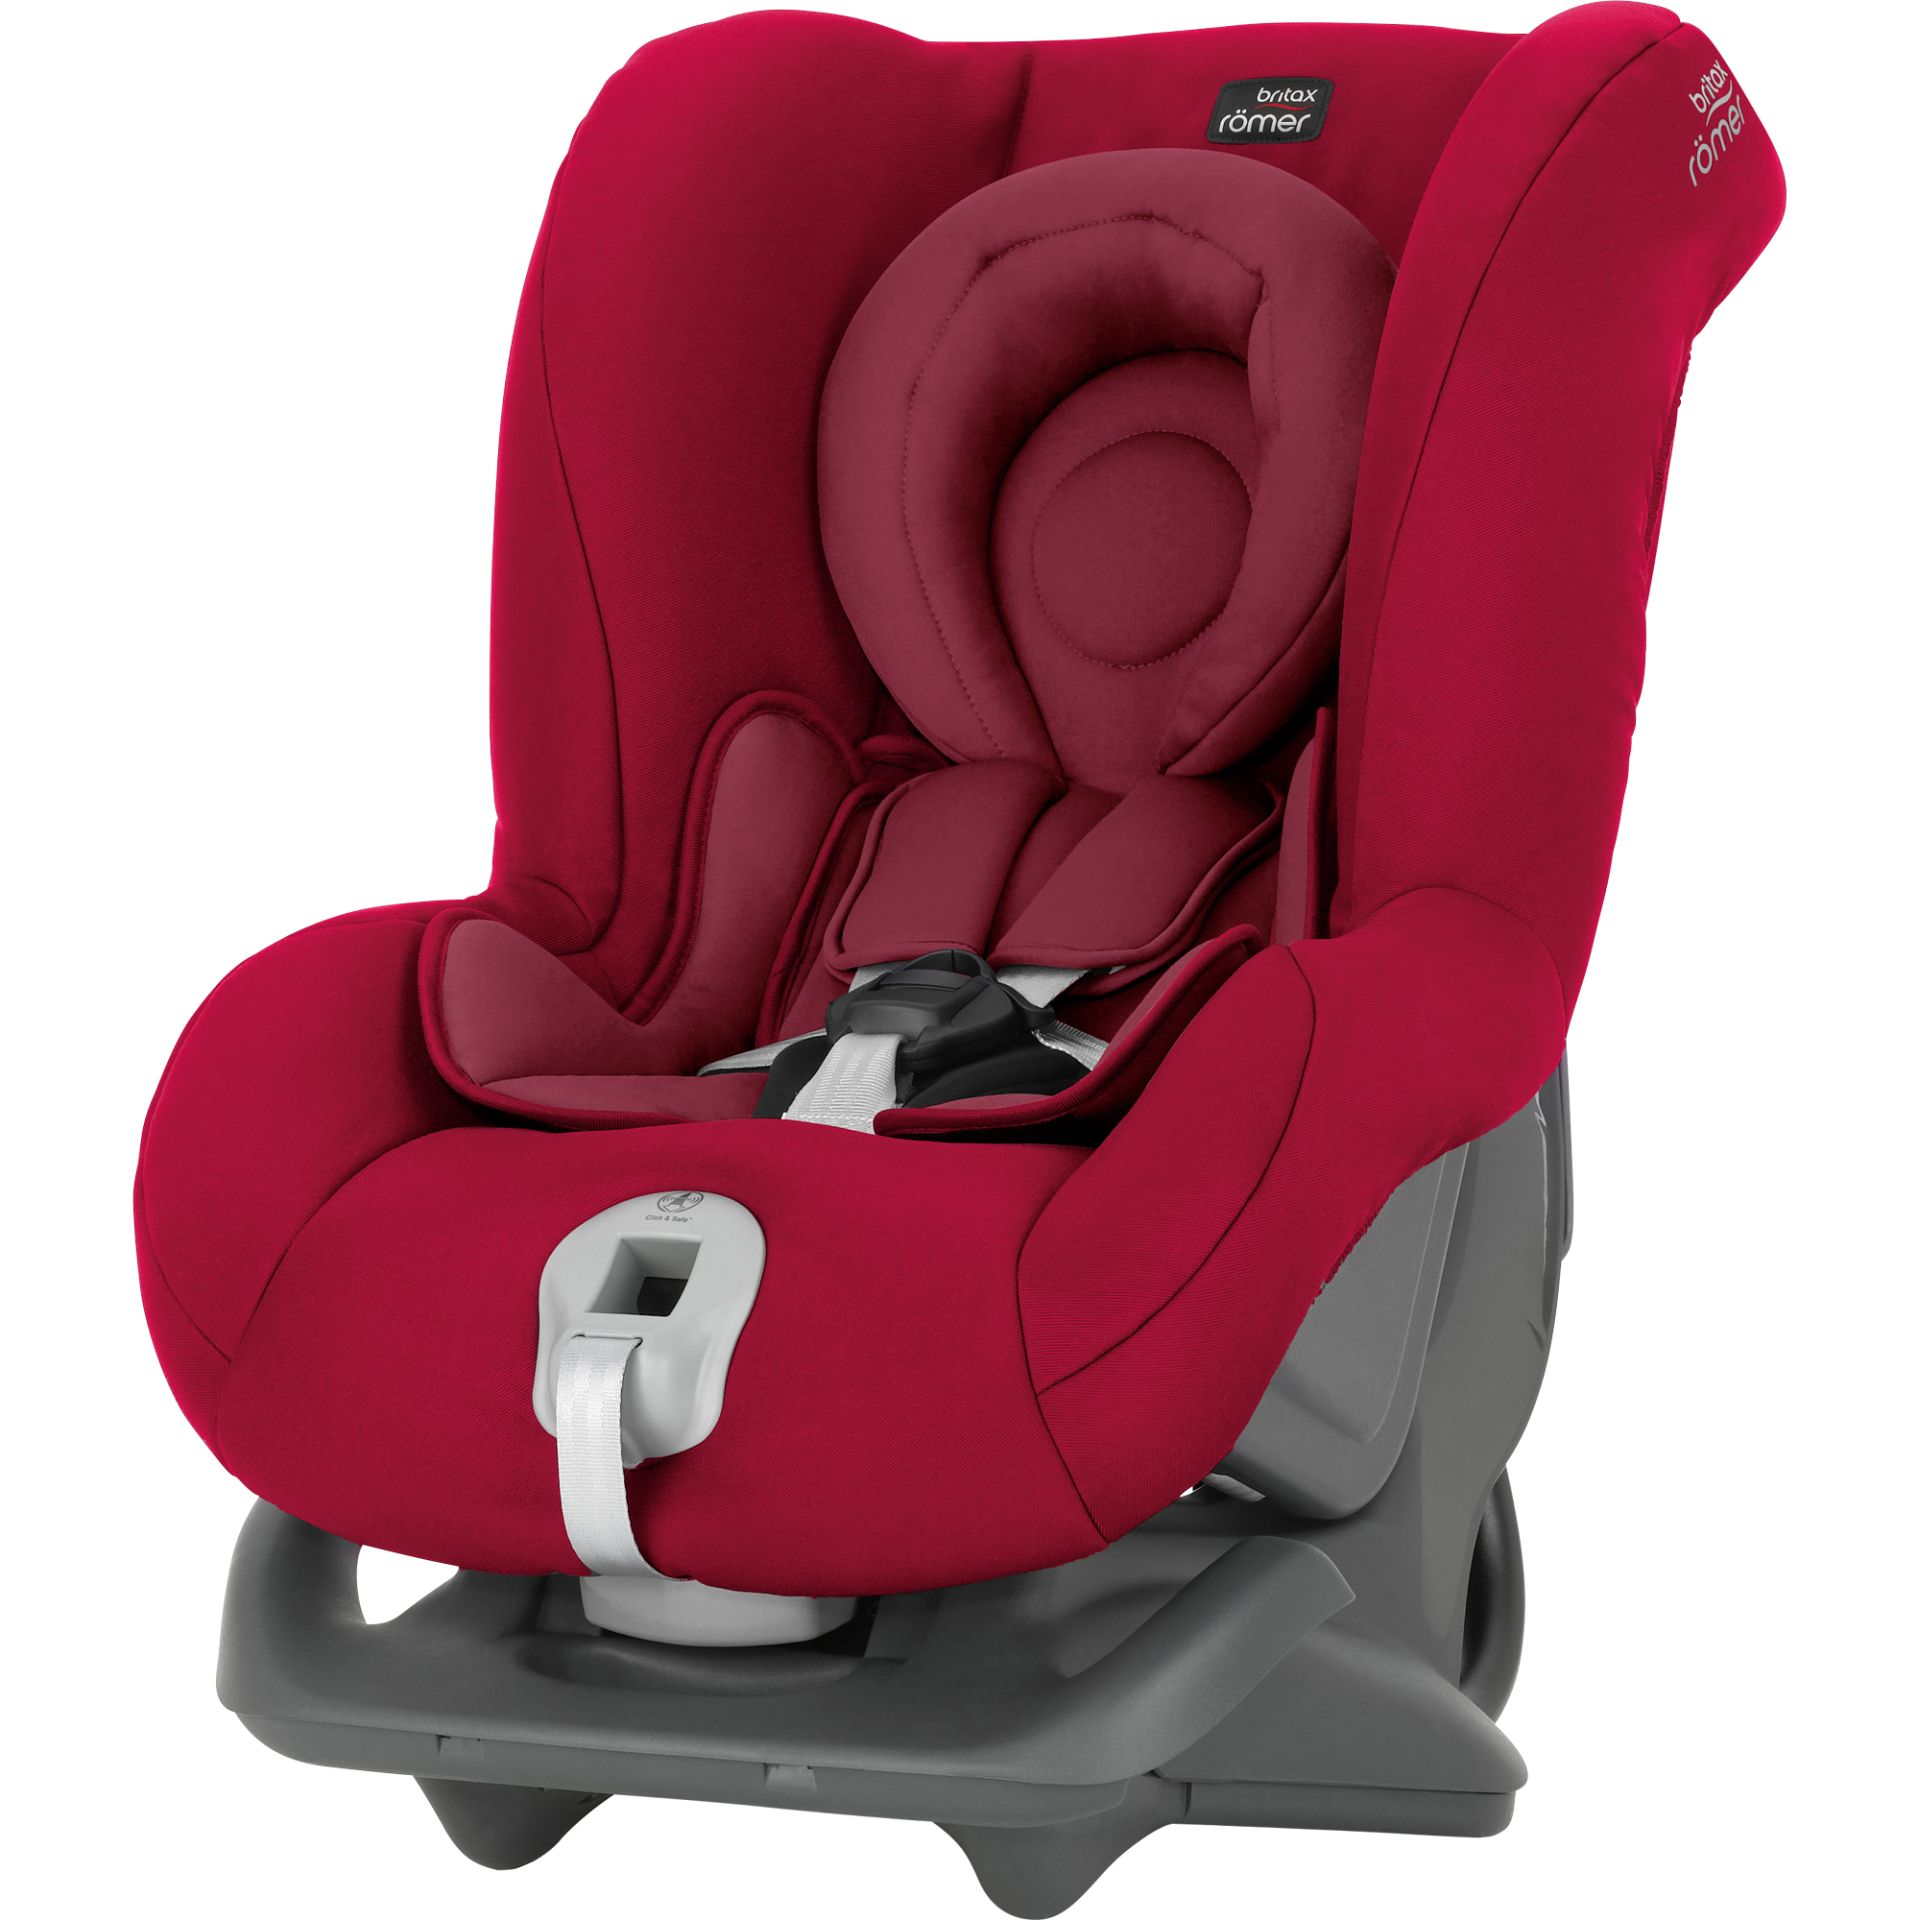 britax r mer car seat first class plus 2018 flame red buy at kidsroom car seats. Black Bedroom Furniture Sets. Home Design Ideas